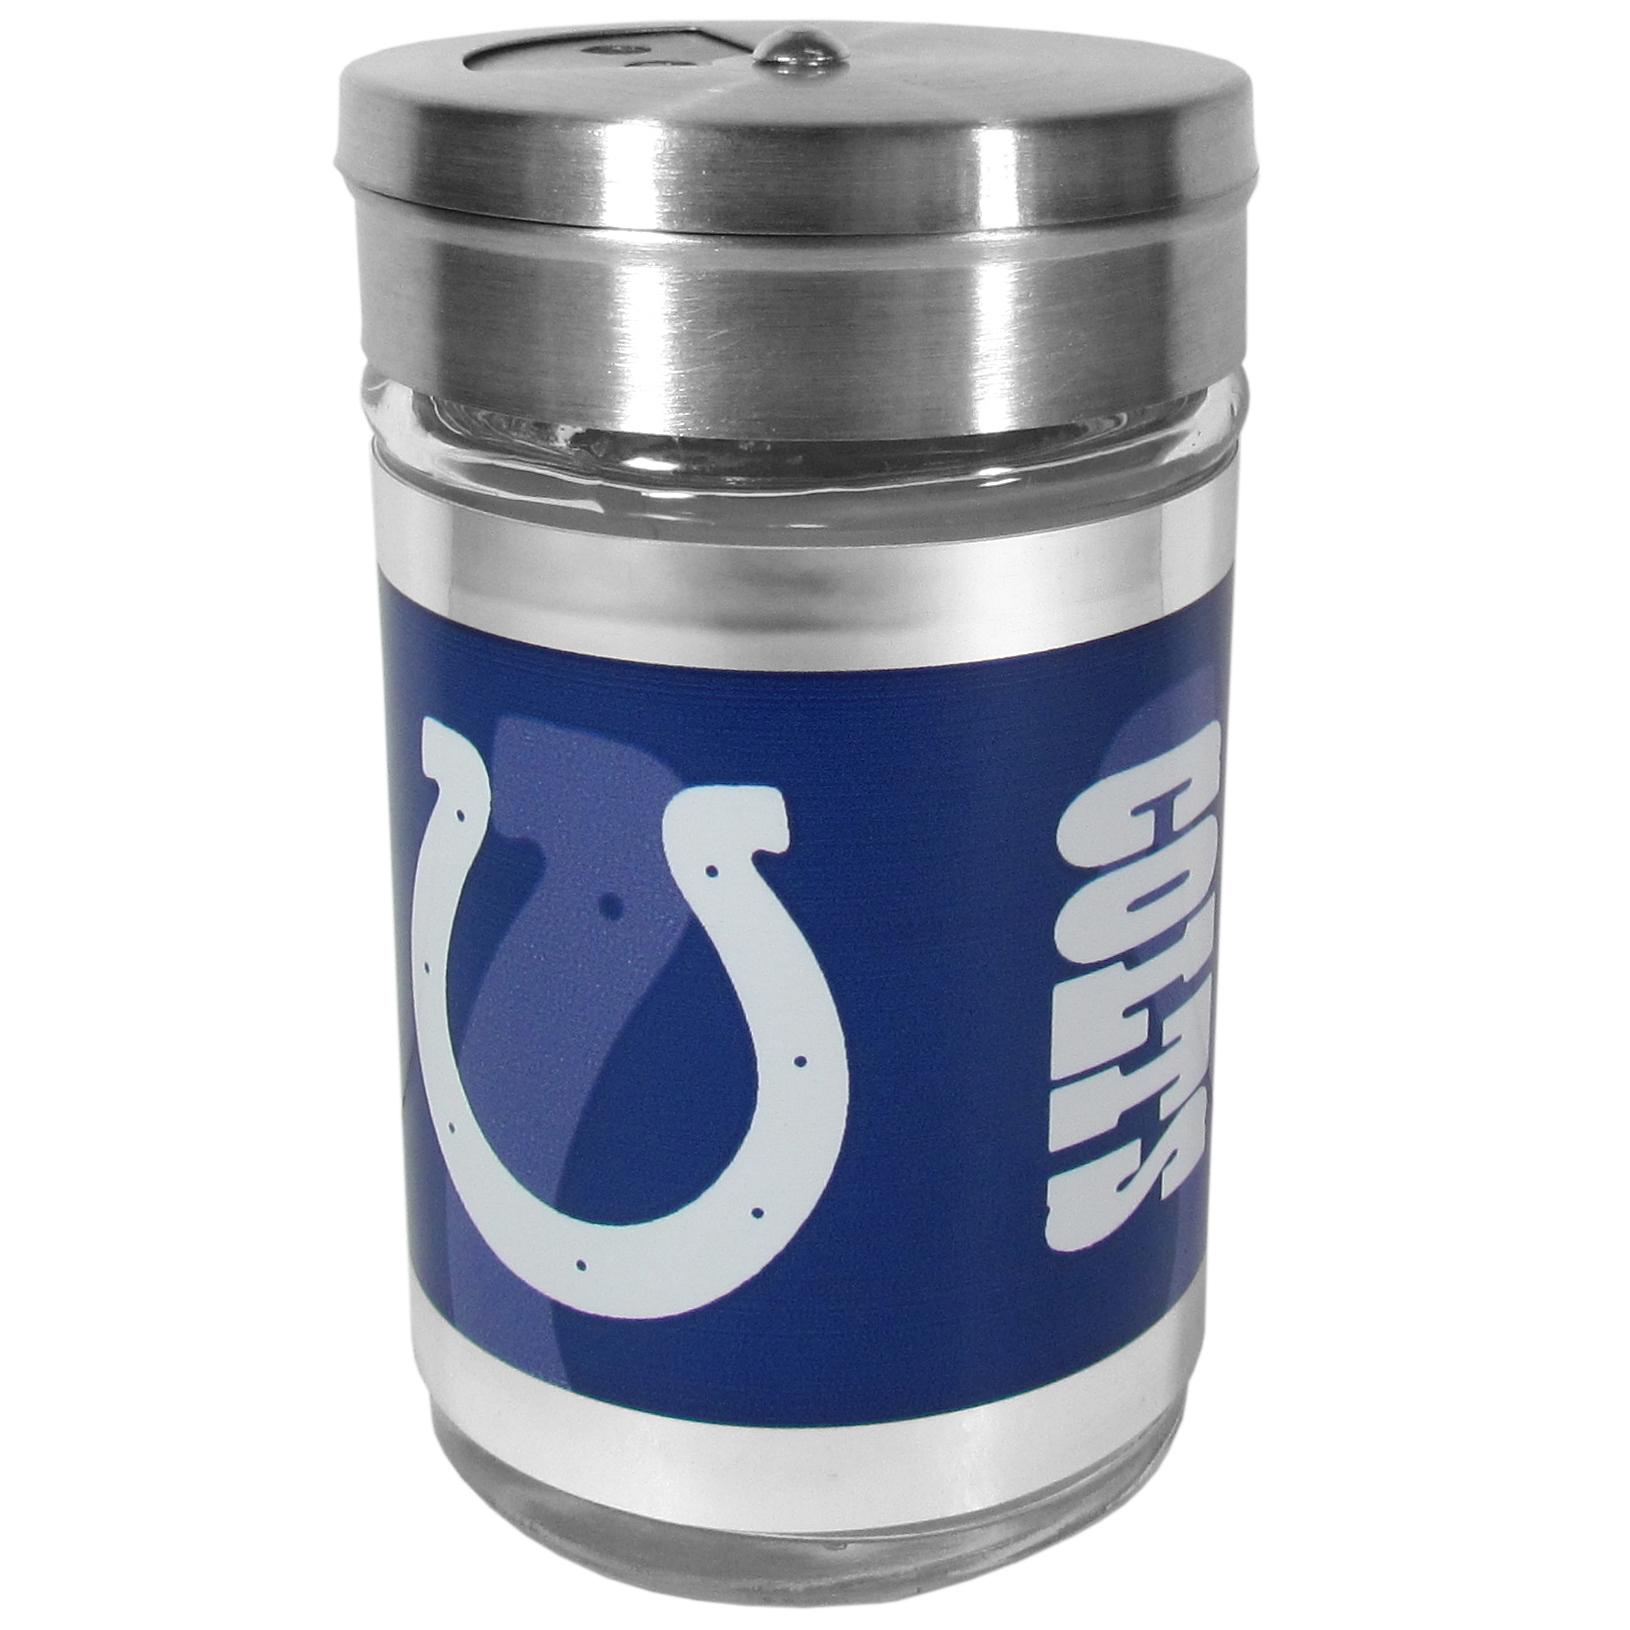 Indianapolis Colts Tailgater Season Shakers - Spice it up with our Indianapolis Colts tailgater season shakers! This compact shaker is 2 inch tall with a twist top that closes off the holes at the top making it perfect for travel preventing those messy spills. The shaker has wide holes perfect for keeping your pepper seeds or cheese toppings. The bright team graphics will make you the envy of the other fans while you are grilling up your tailgating goodies.